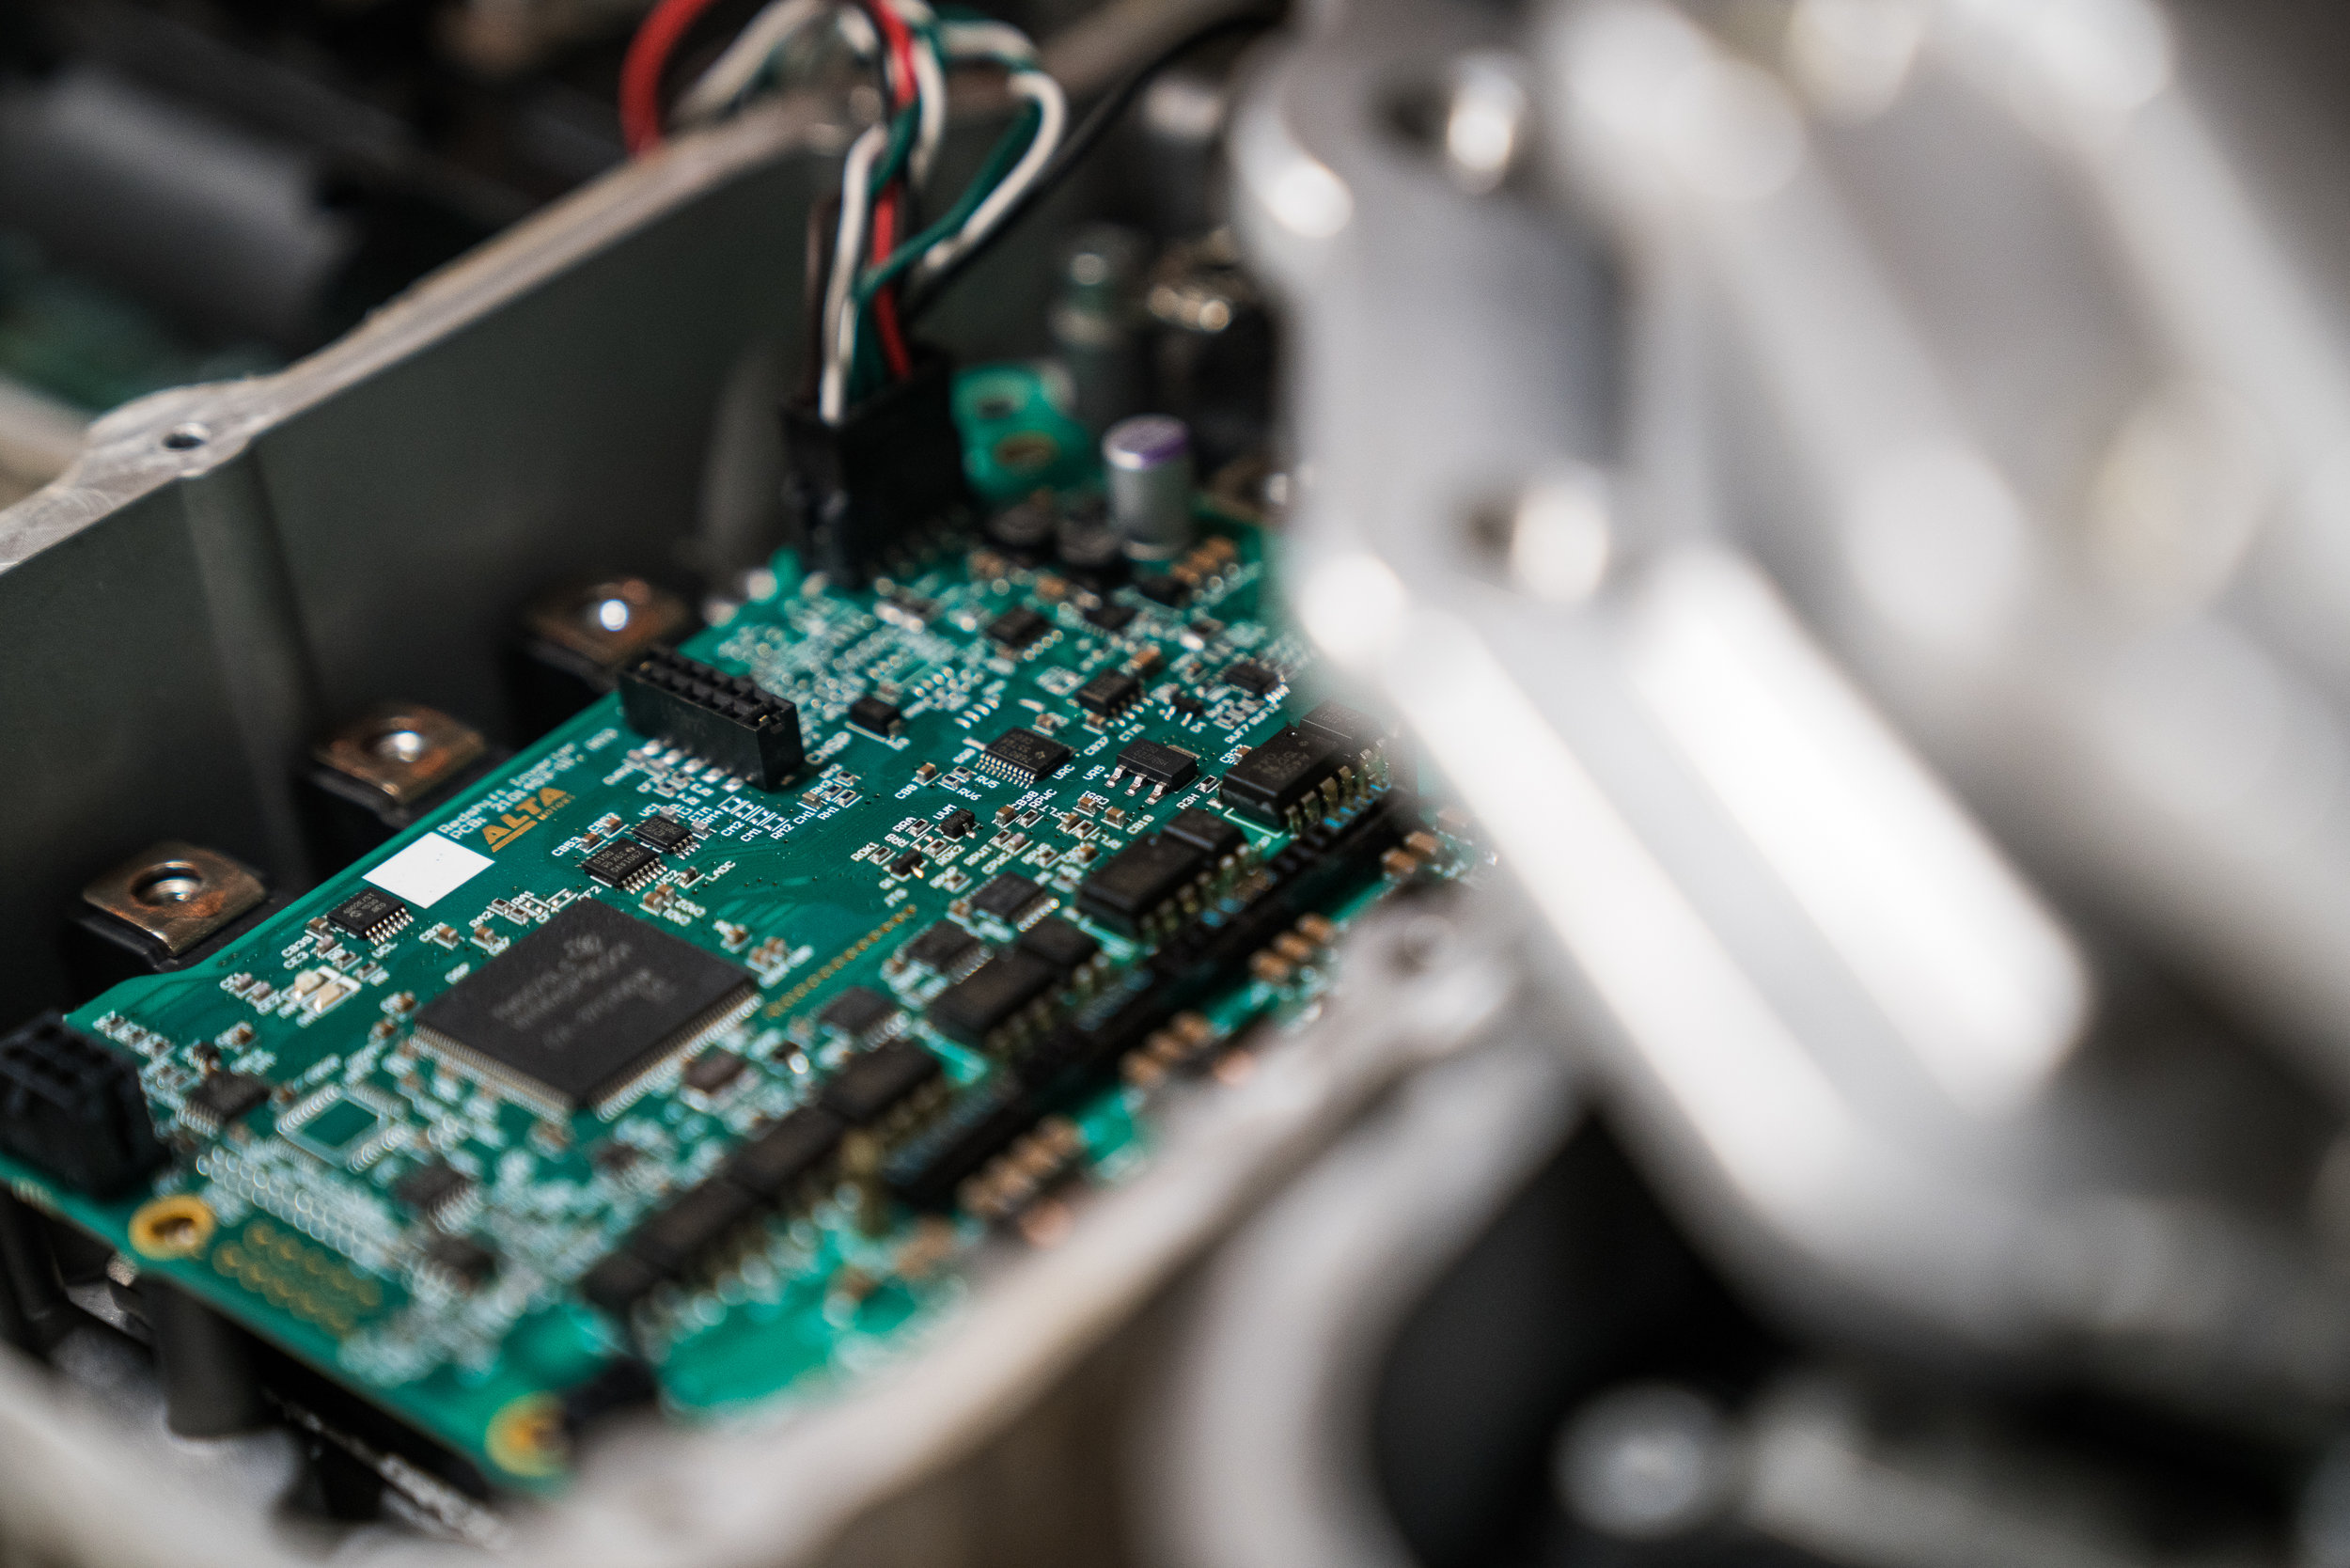 Alta Motors Faq You Have To Clean And Sand The Top Bottom Of Circuitboard Concept